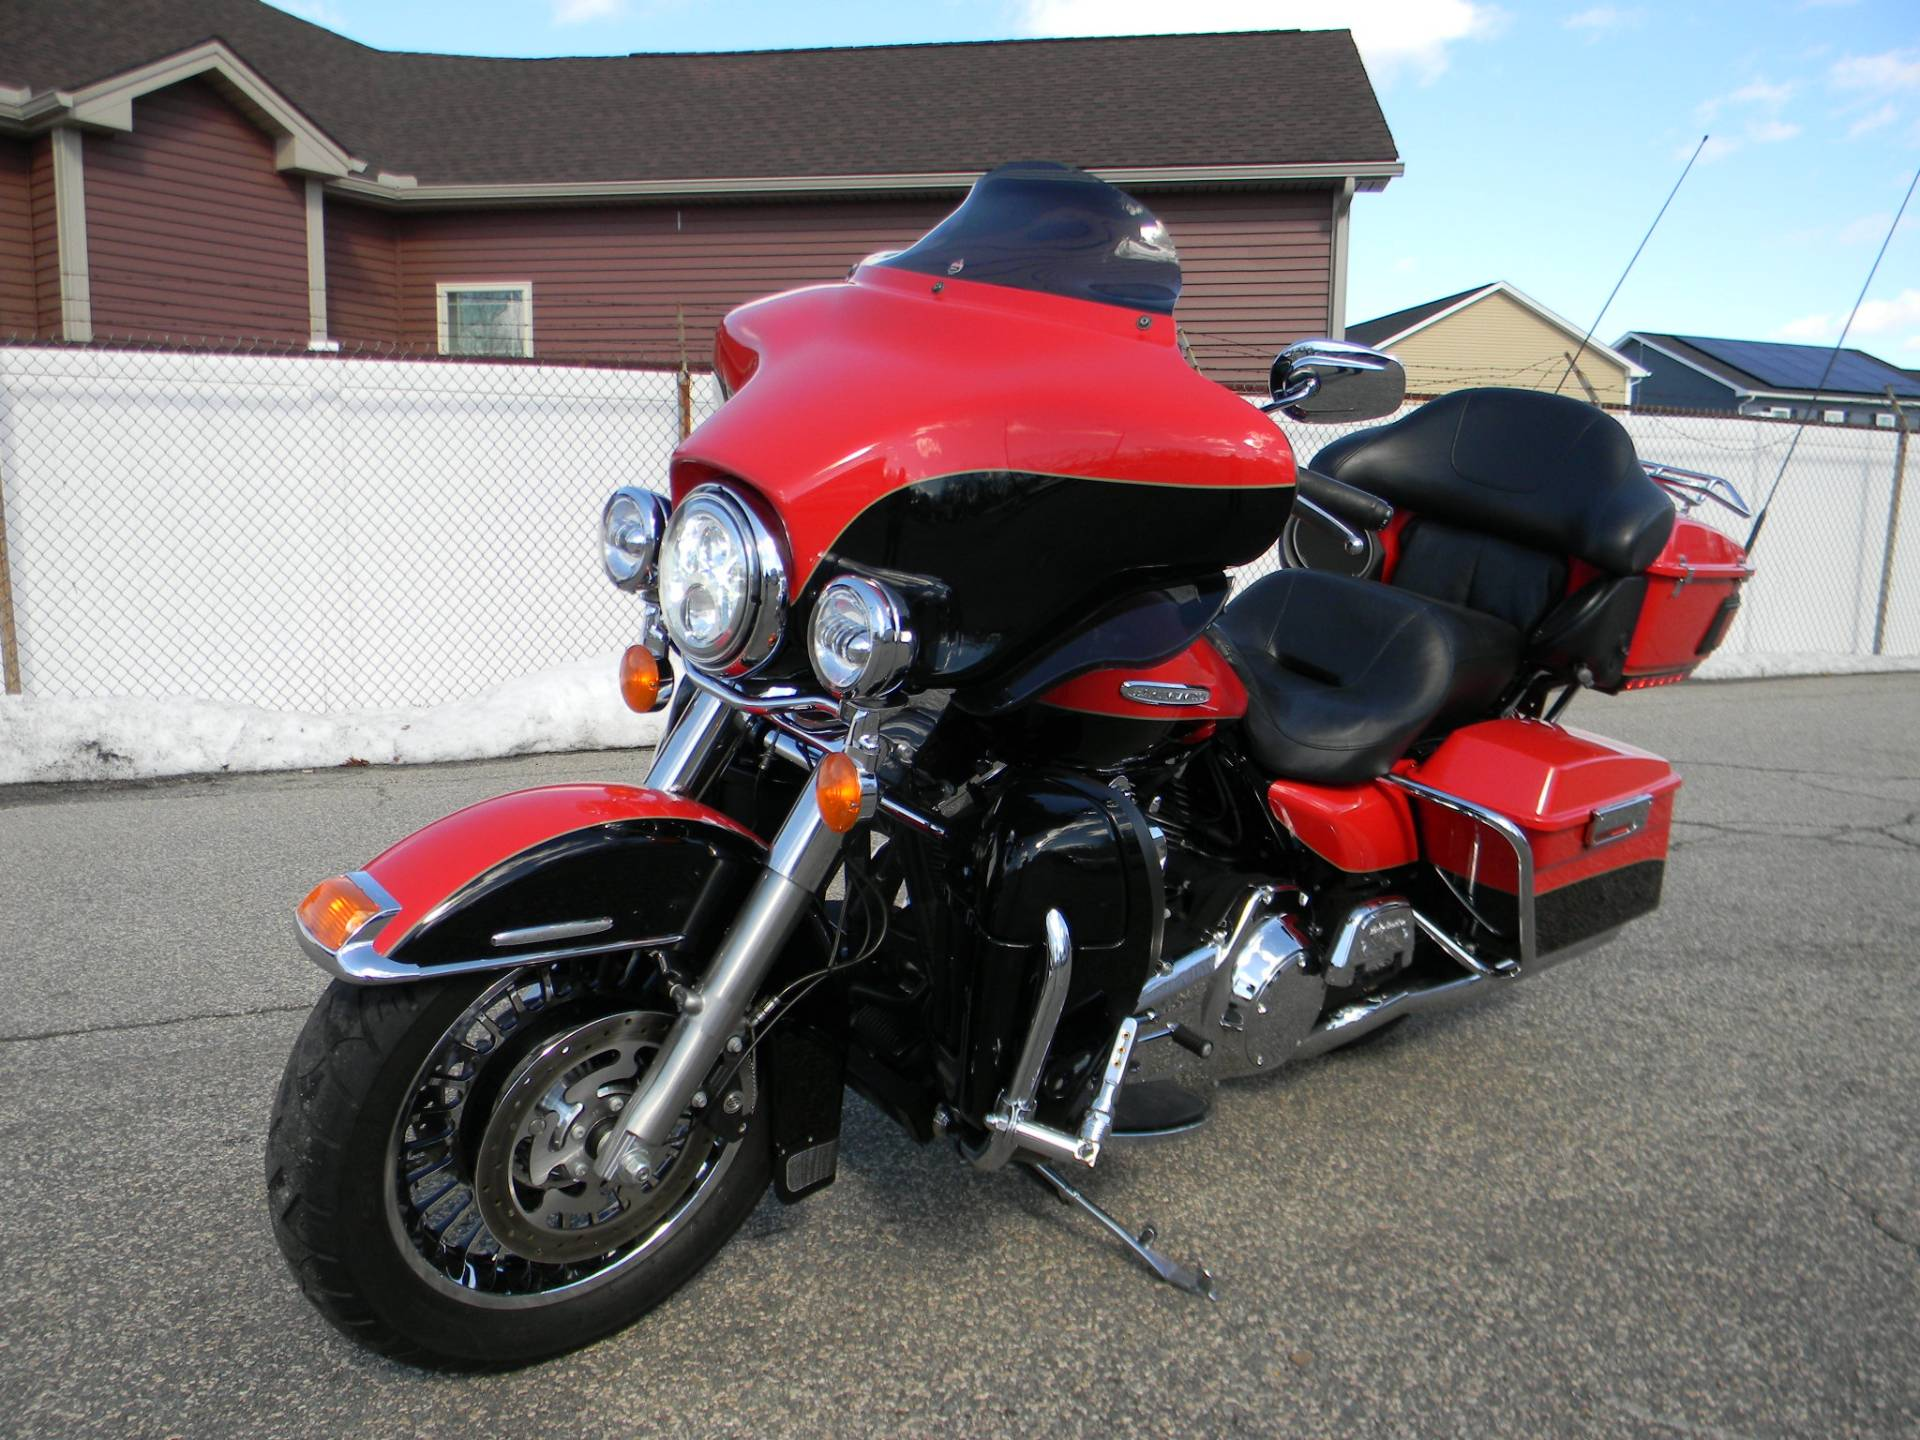 2010 Harley-Davidson Electra Glide® Ultra Limited in Springfield, Massachusetts - Photo 6